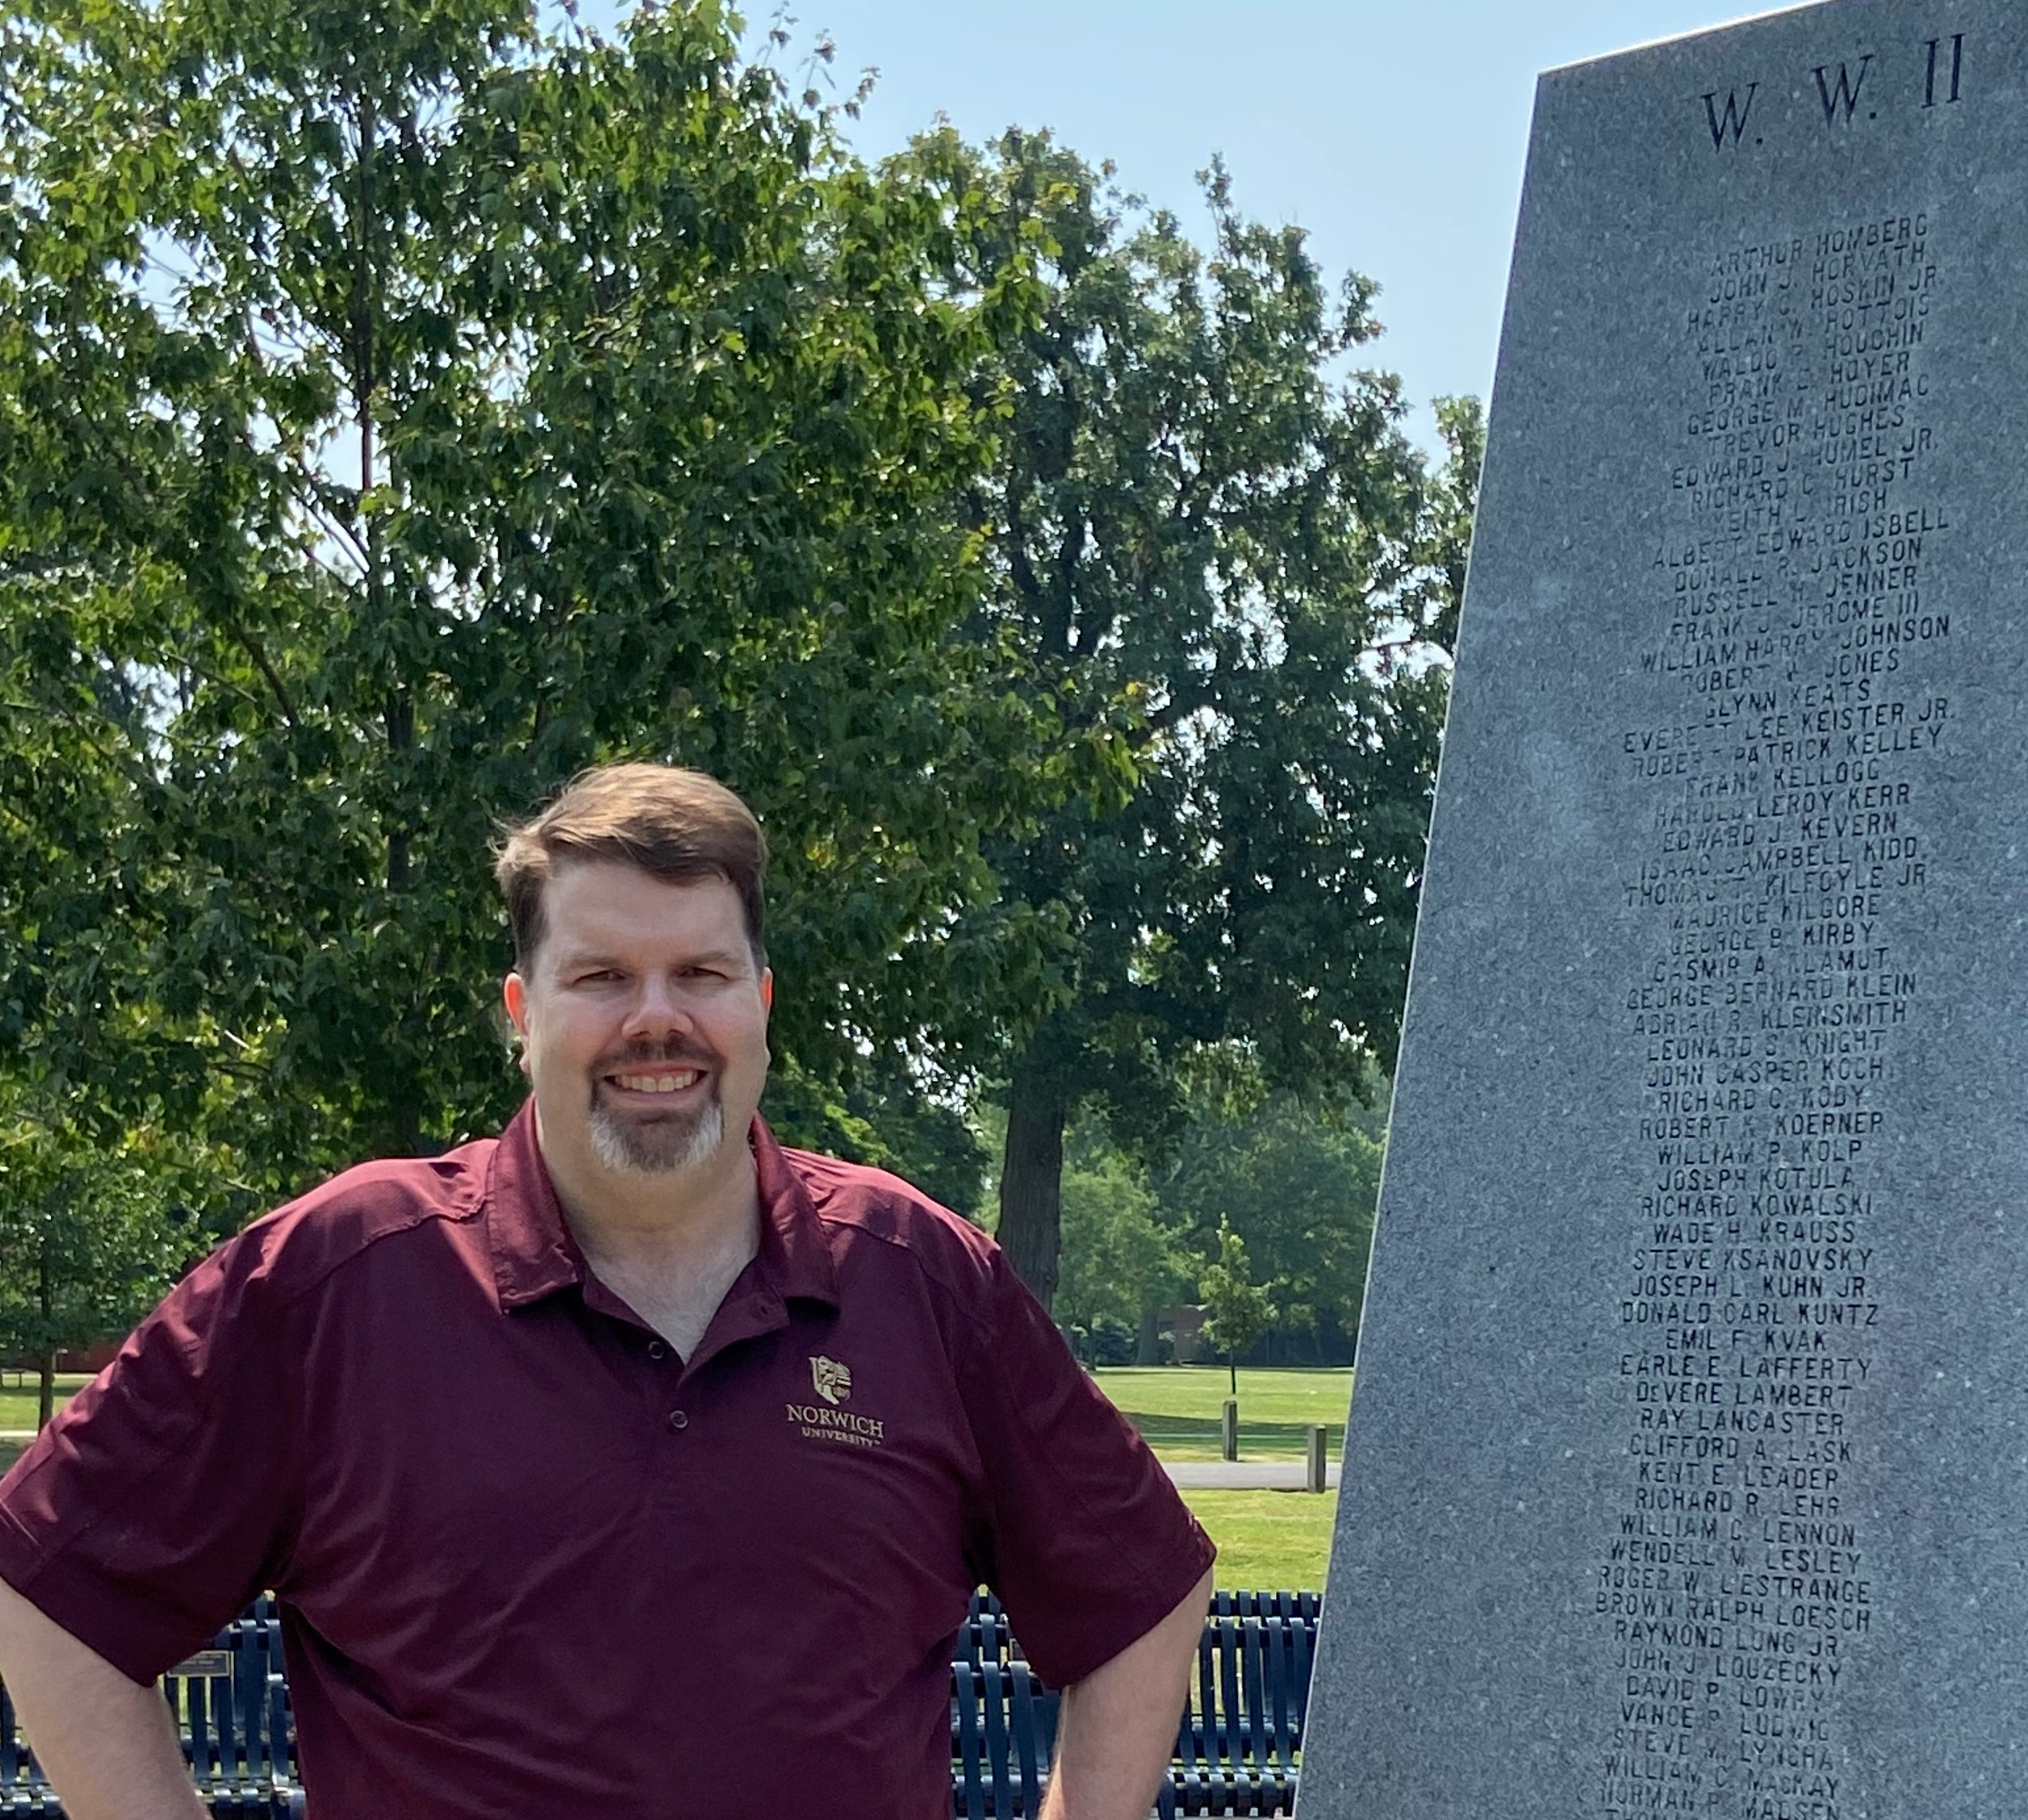 David Ulbrich at a WWII memorial